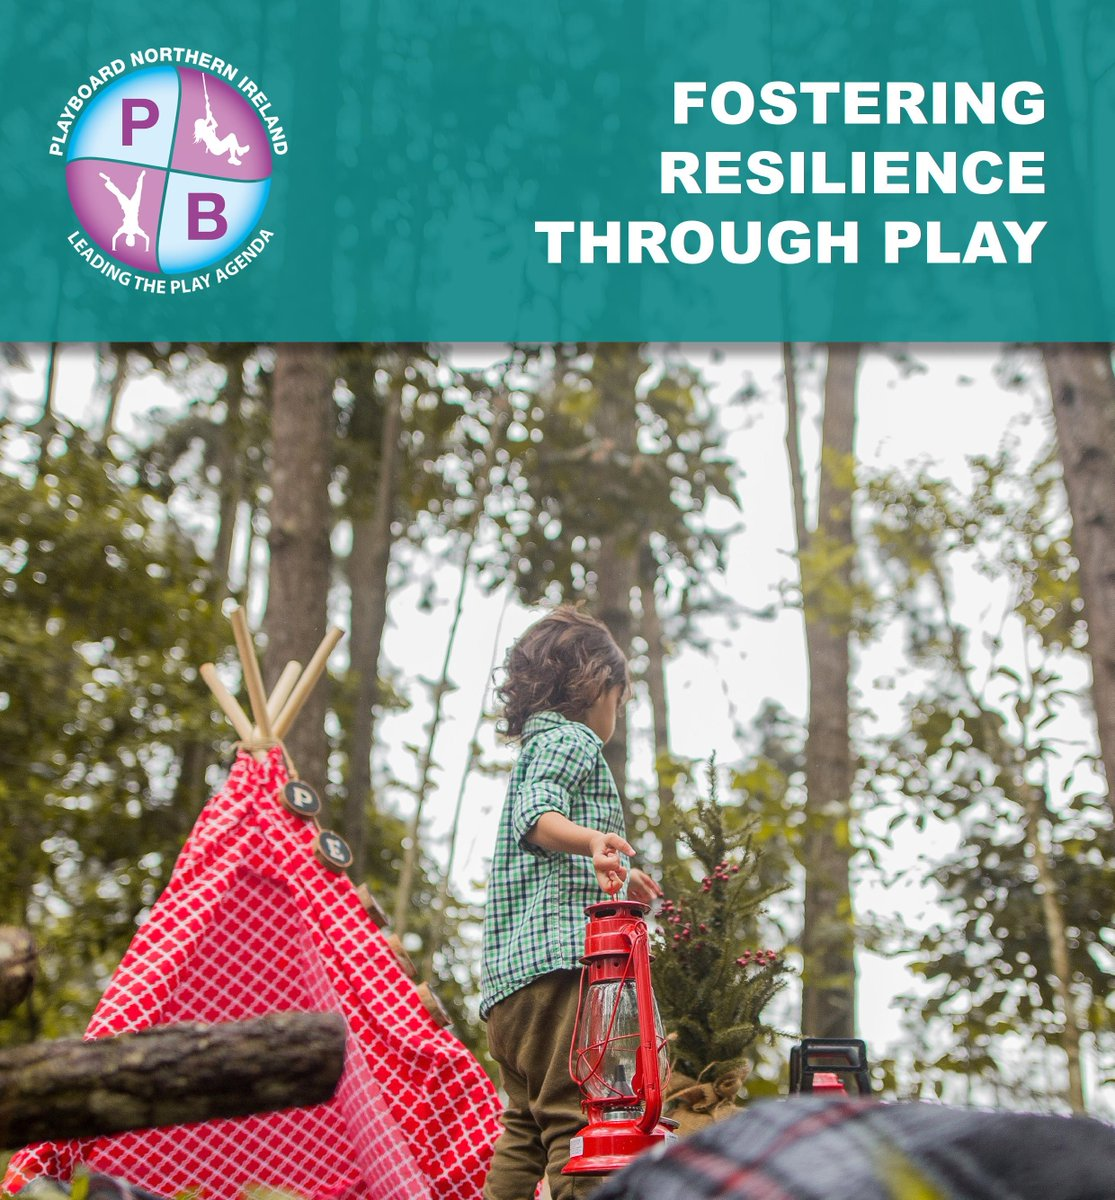 Our Fostering Resilience through Play publication looks at how play can support children & young people's mental health & well-being.  The document highlights the role of adults, the play environment & the benefits gained by children.  Go to https://t.co/2YJazXjQ1d #ParentingWeek https://t.co/HXdSrjWndE